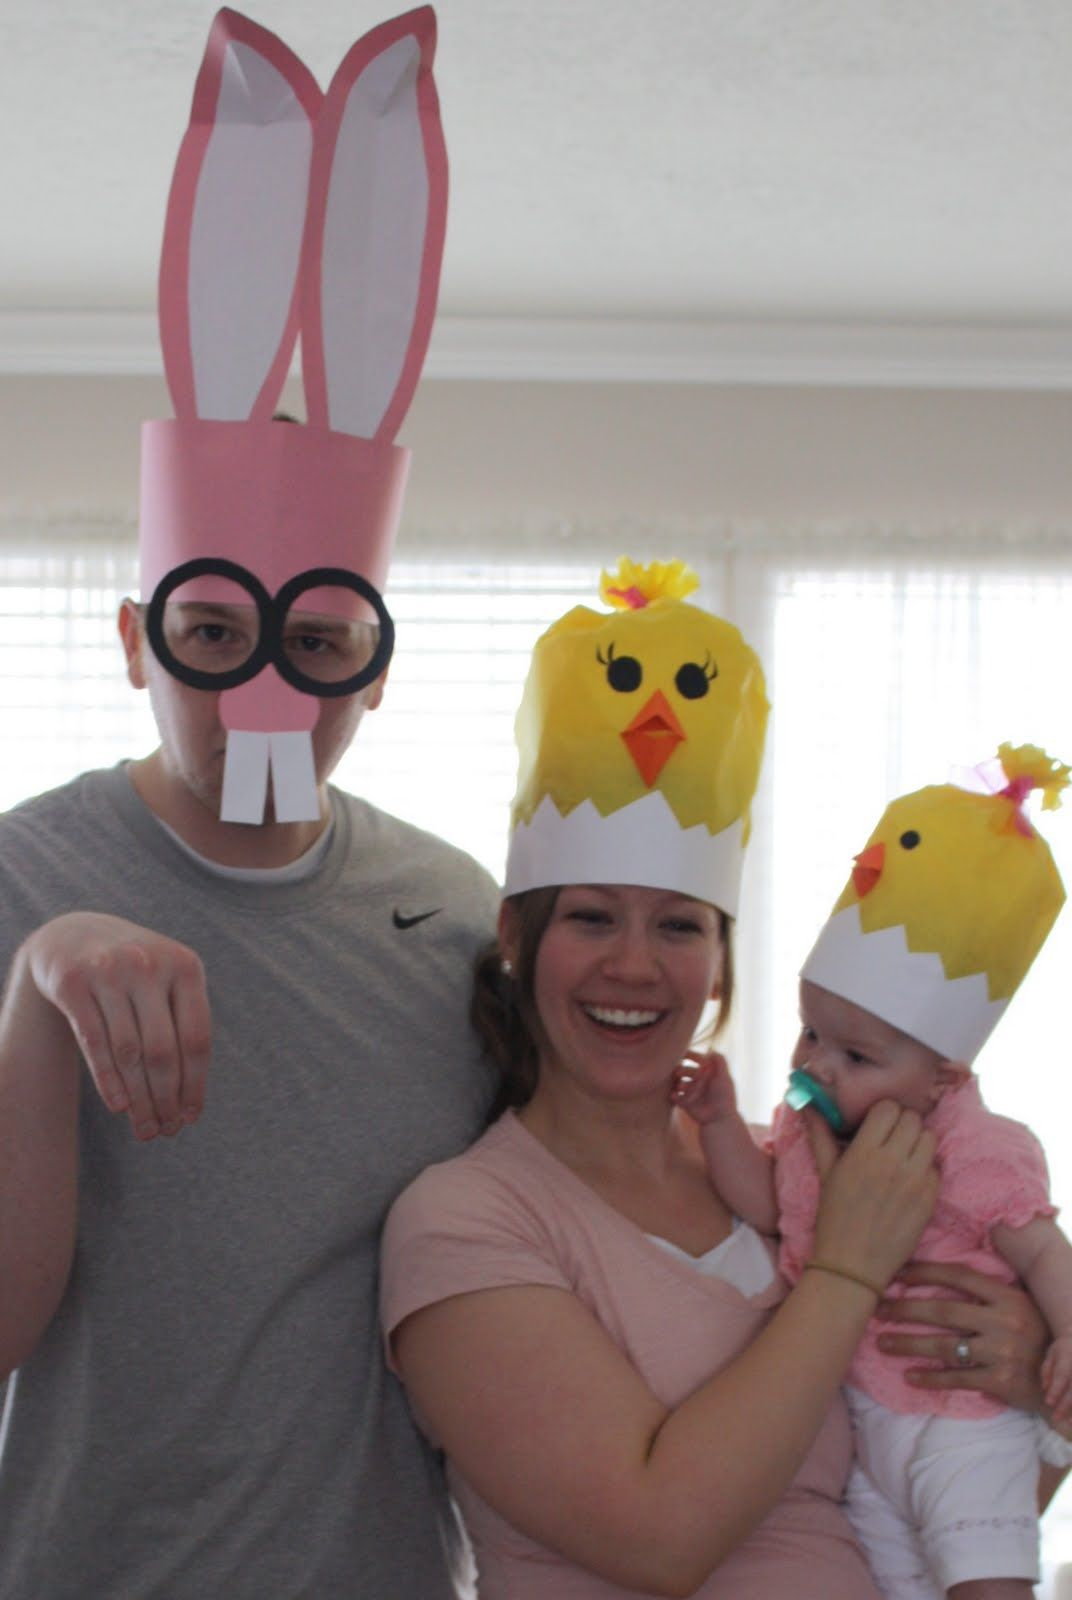 Animal craft hats construction paper all things crafty easter animal craft hats construction paper all things crafty easter hats jeuxipadfo Image collections